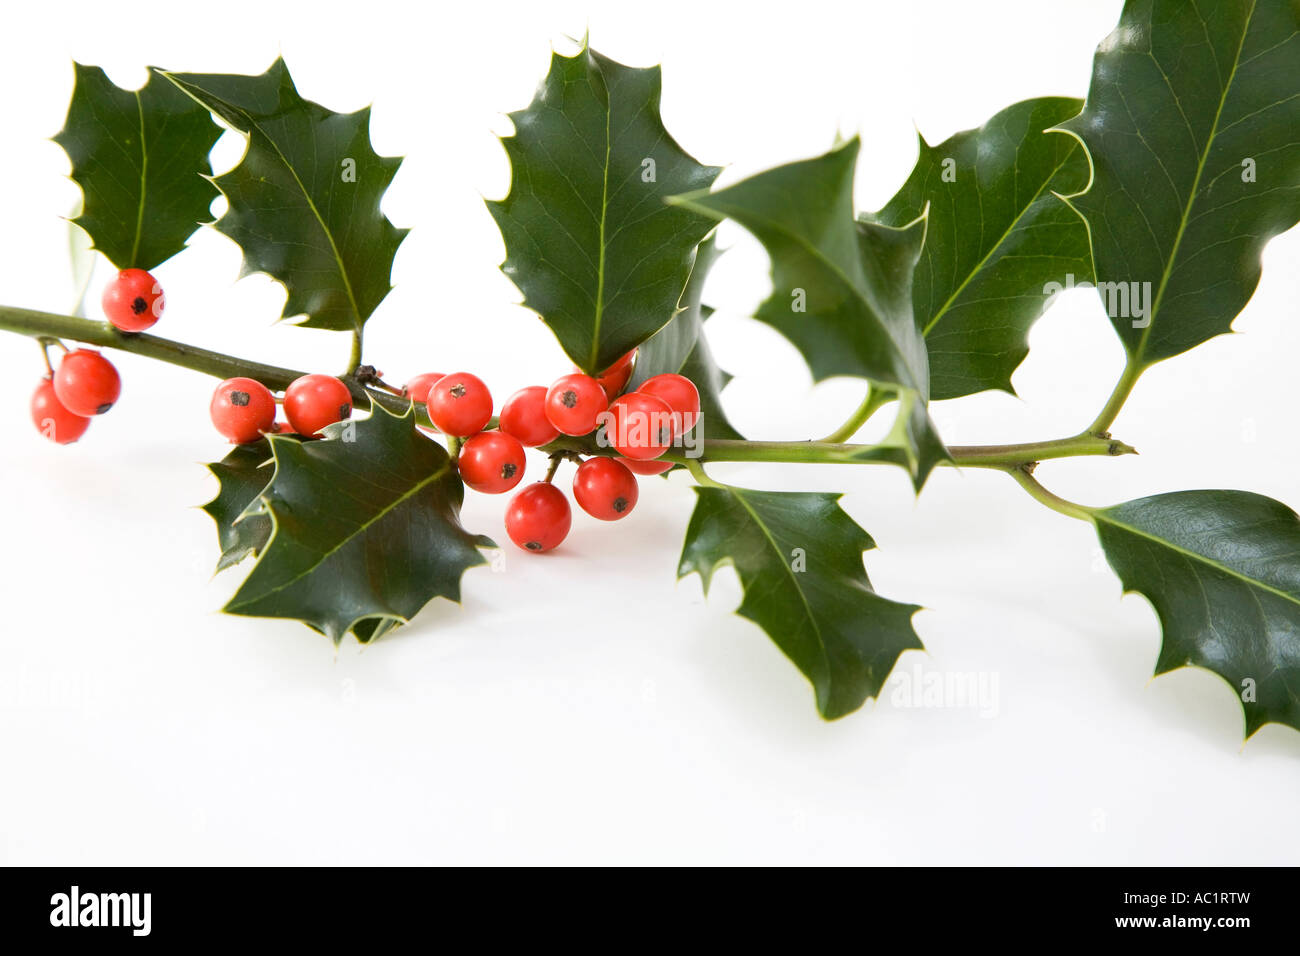 Holly twig, close-up - Stock Image